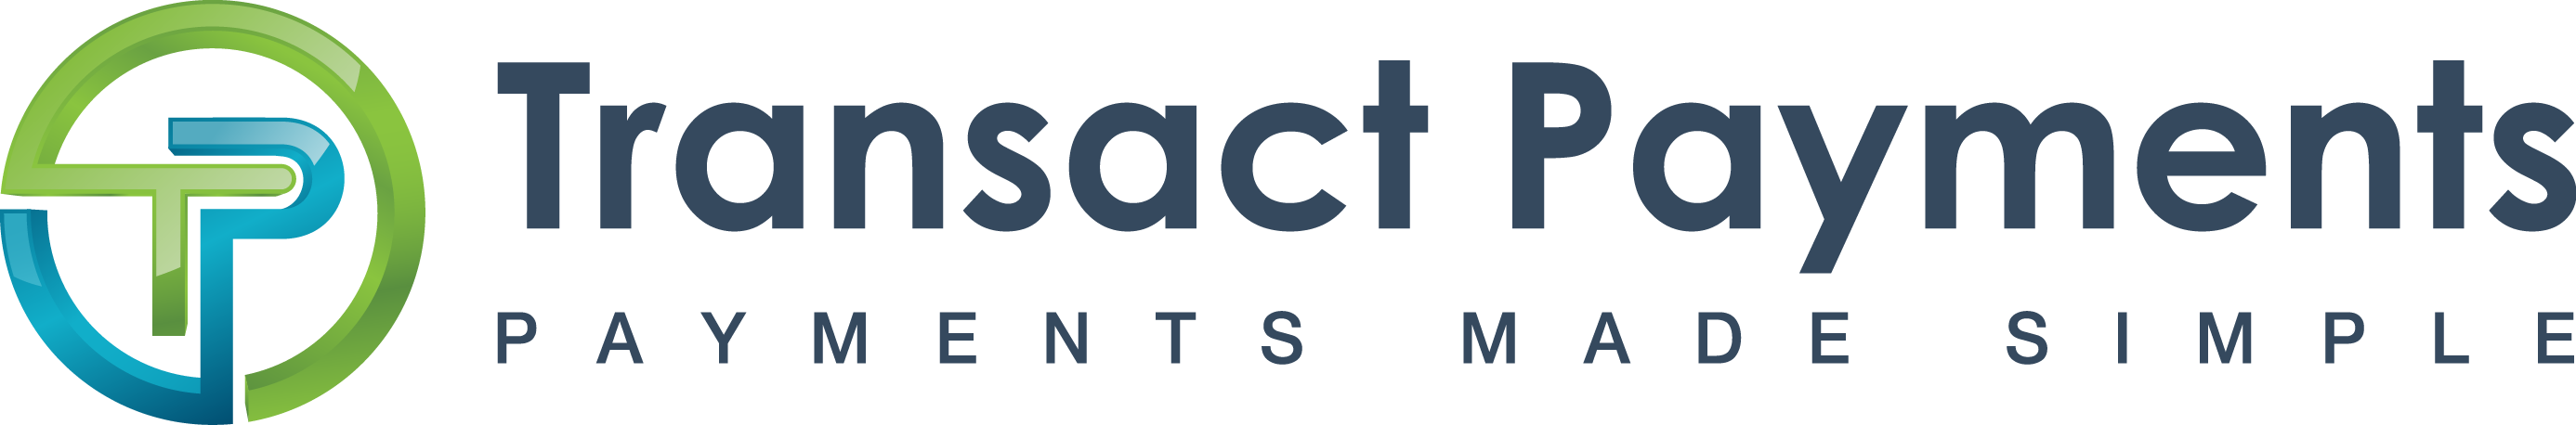 Transact Payments Ltd Logo